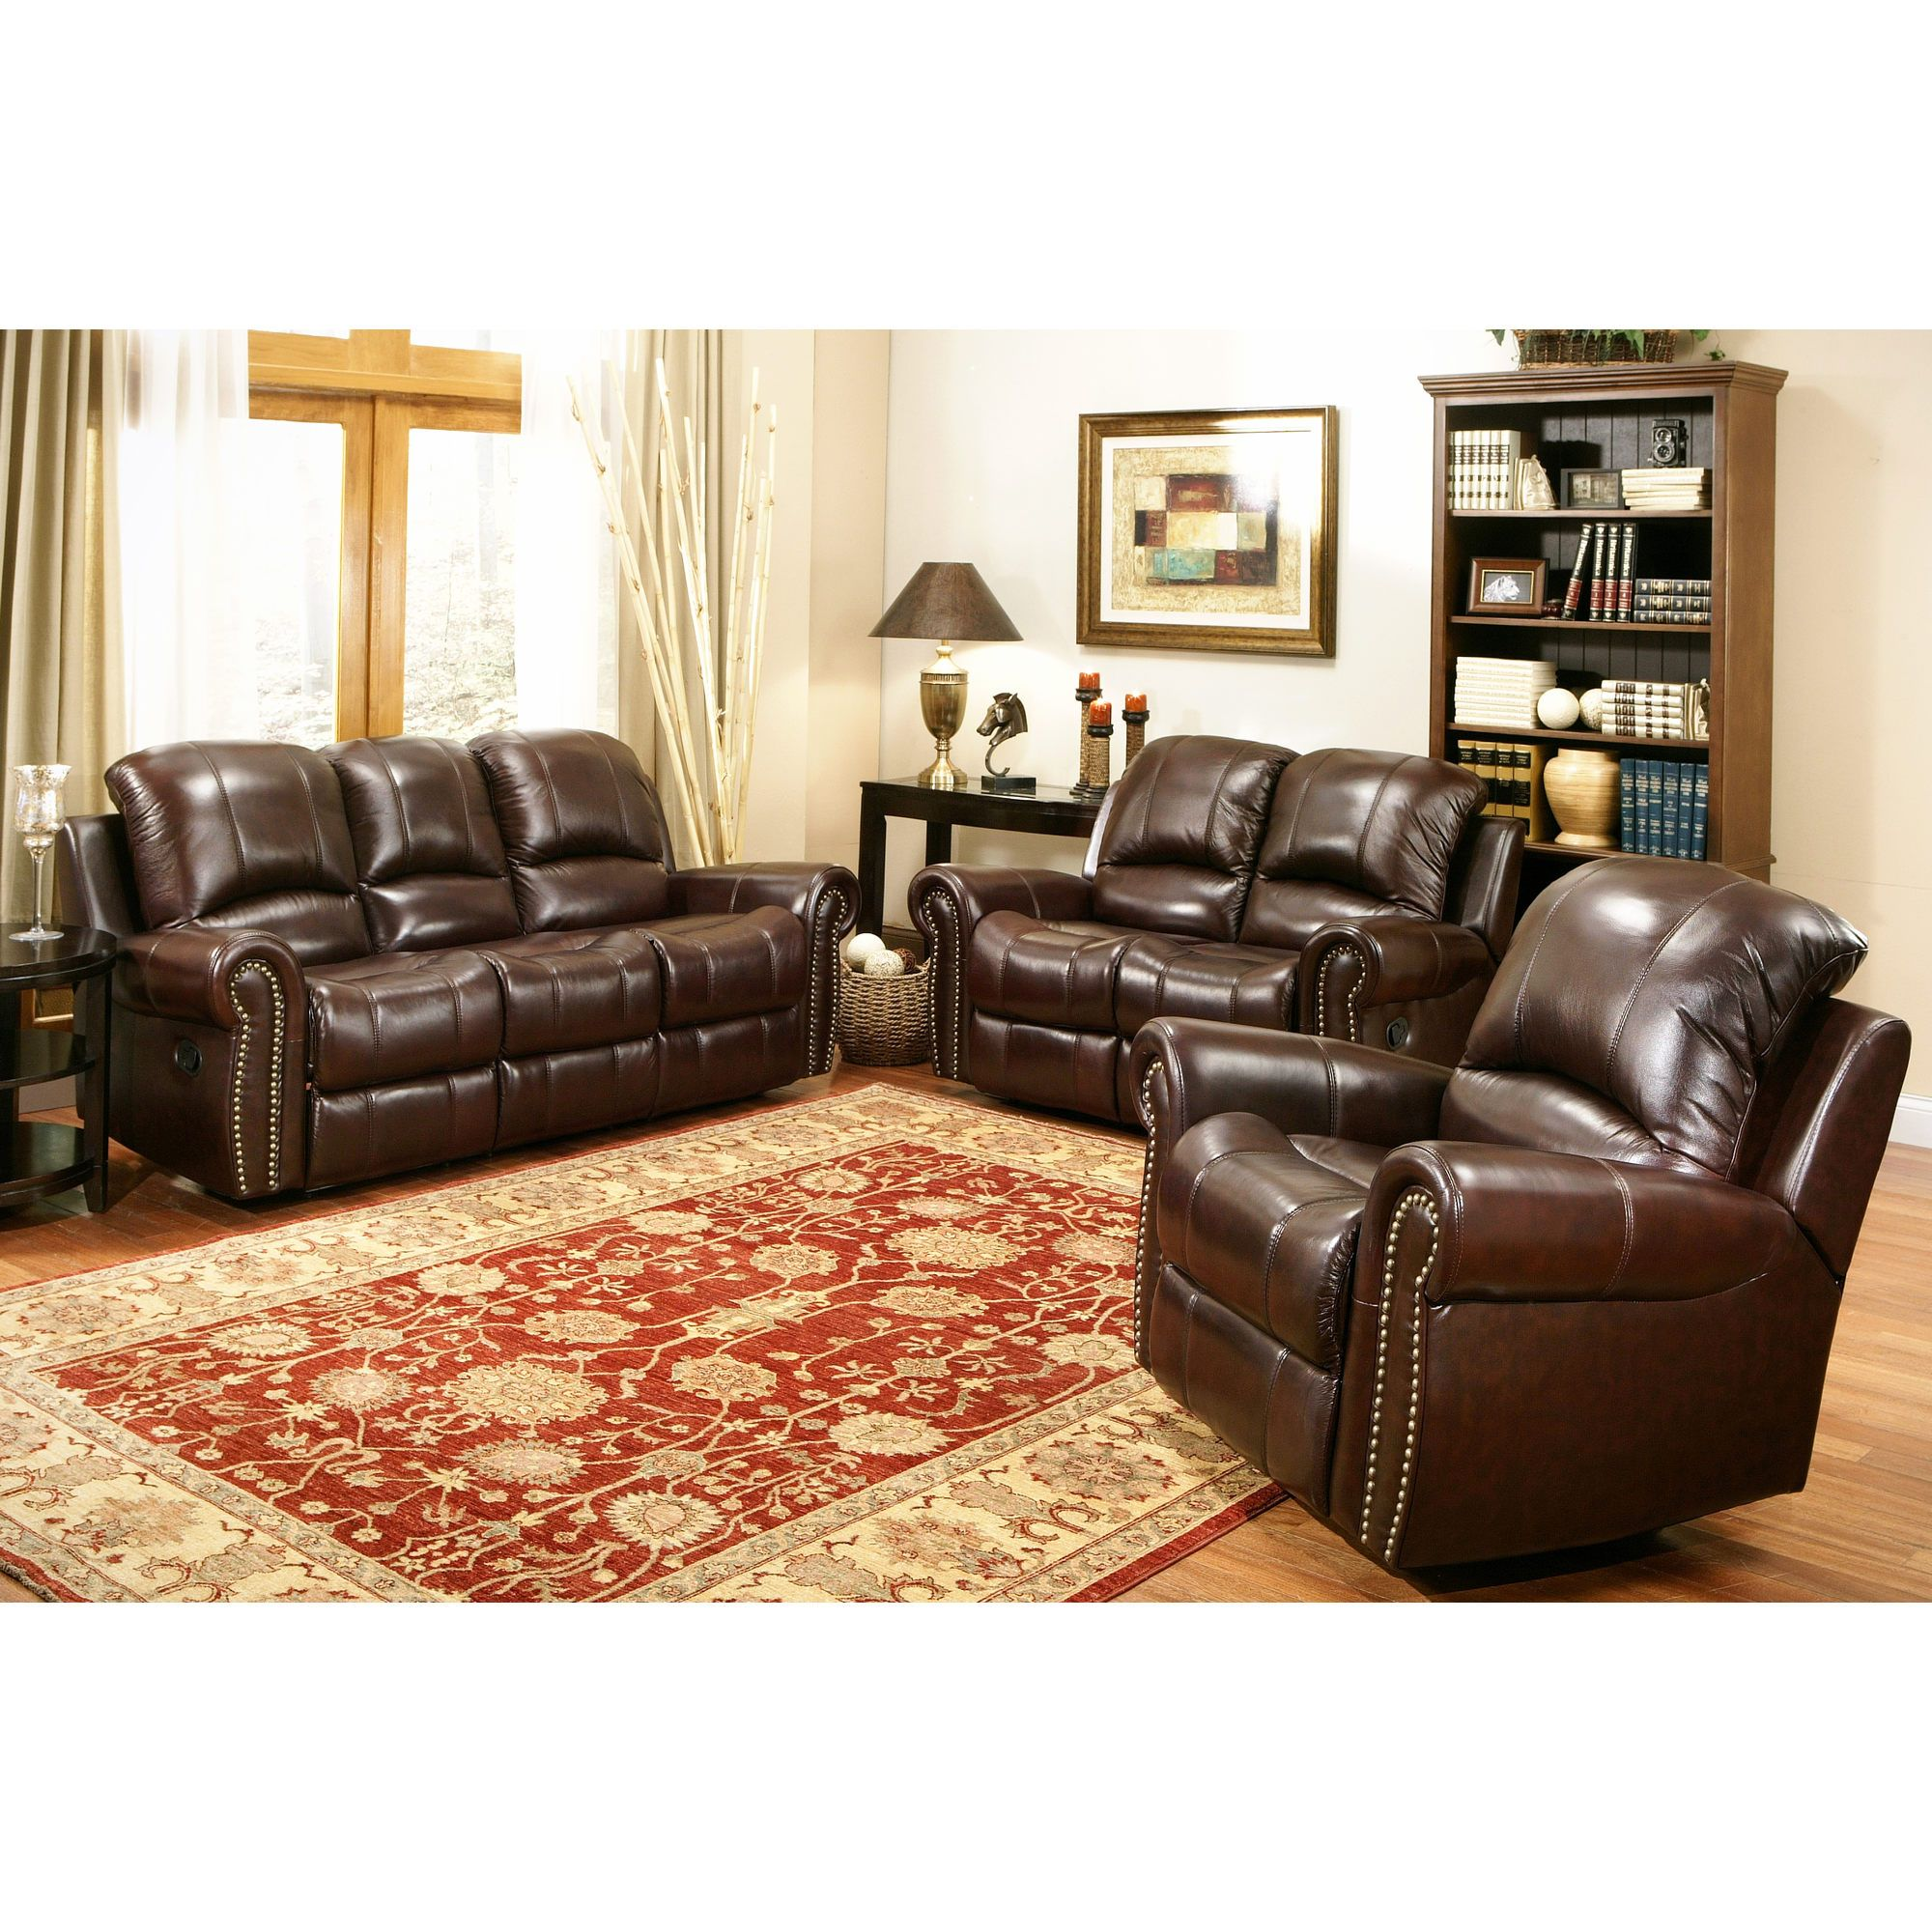 Abbyson Living Berkshire 3 Piece Leather Reclining Furniture Set